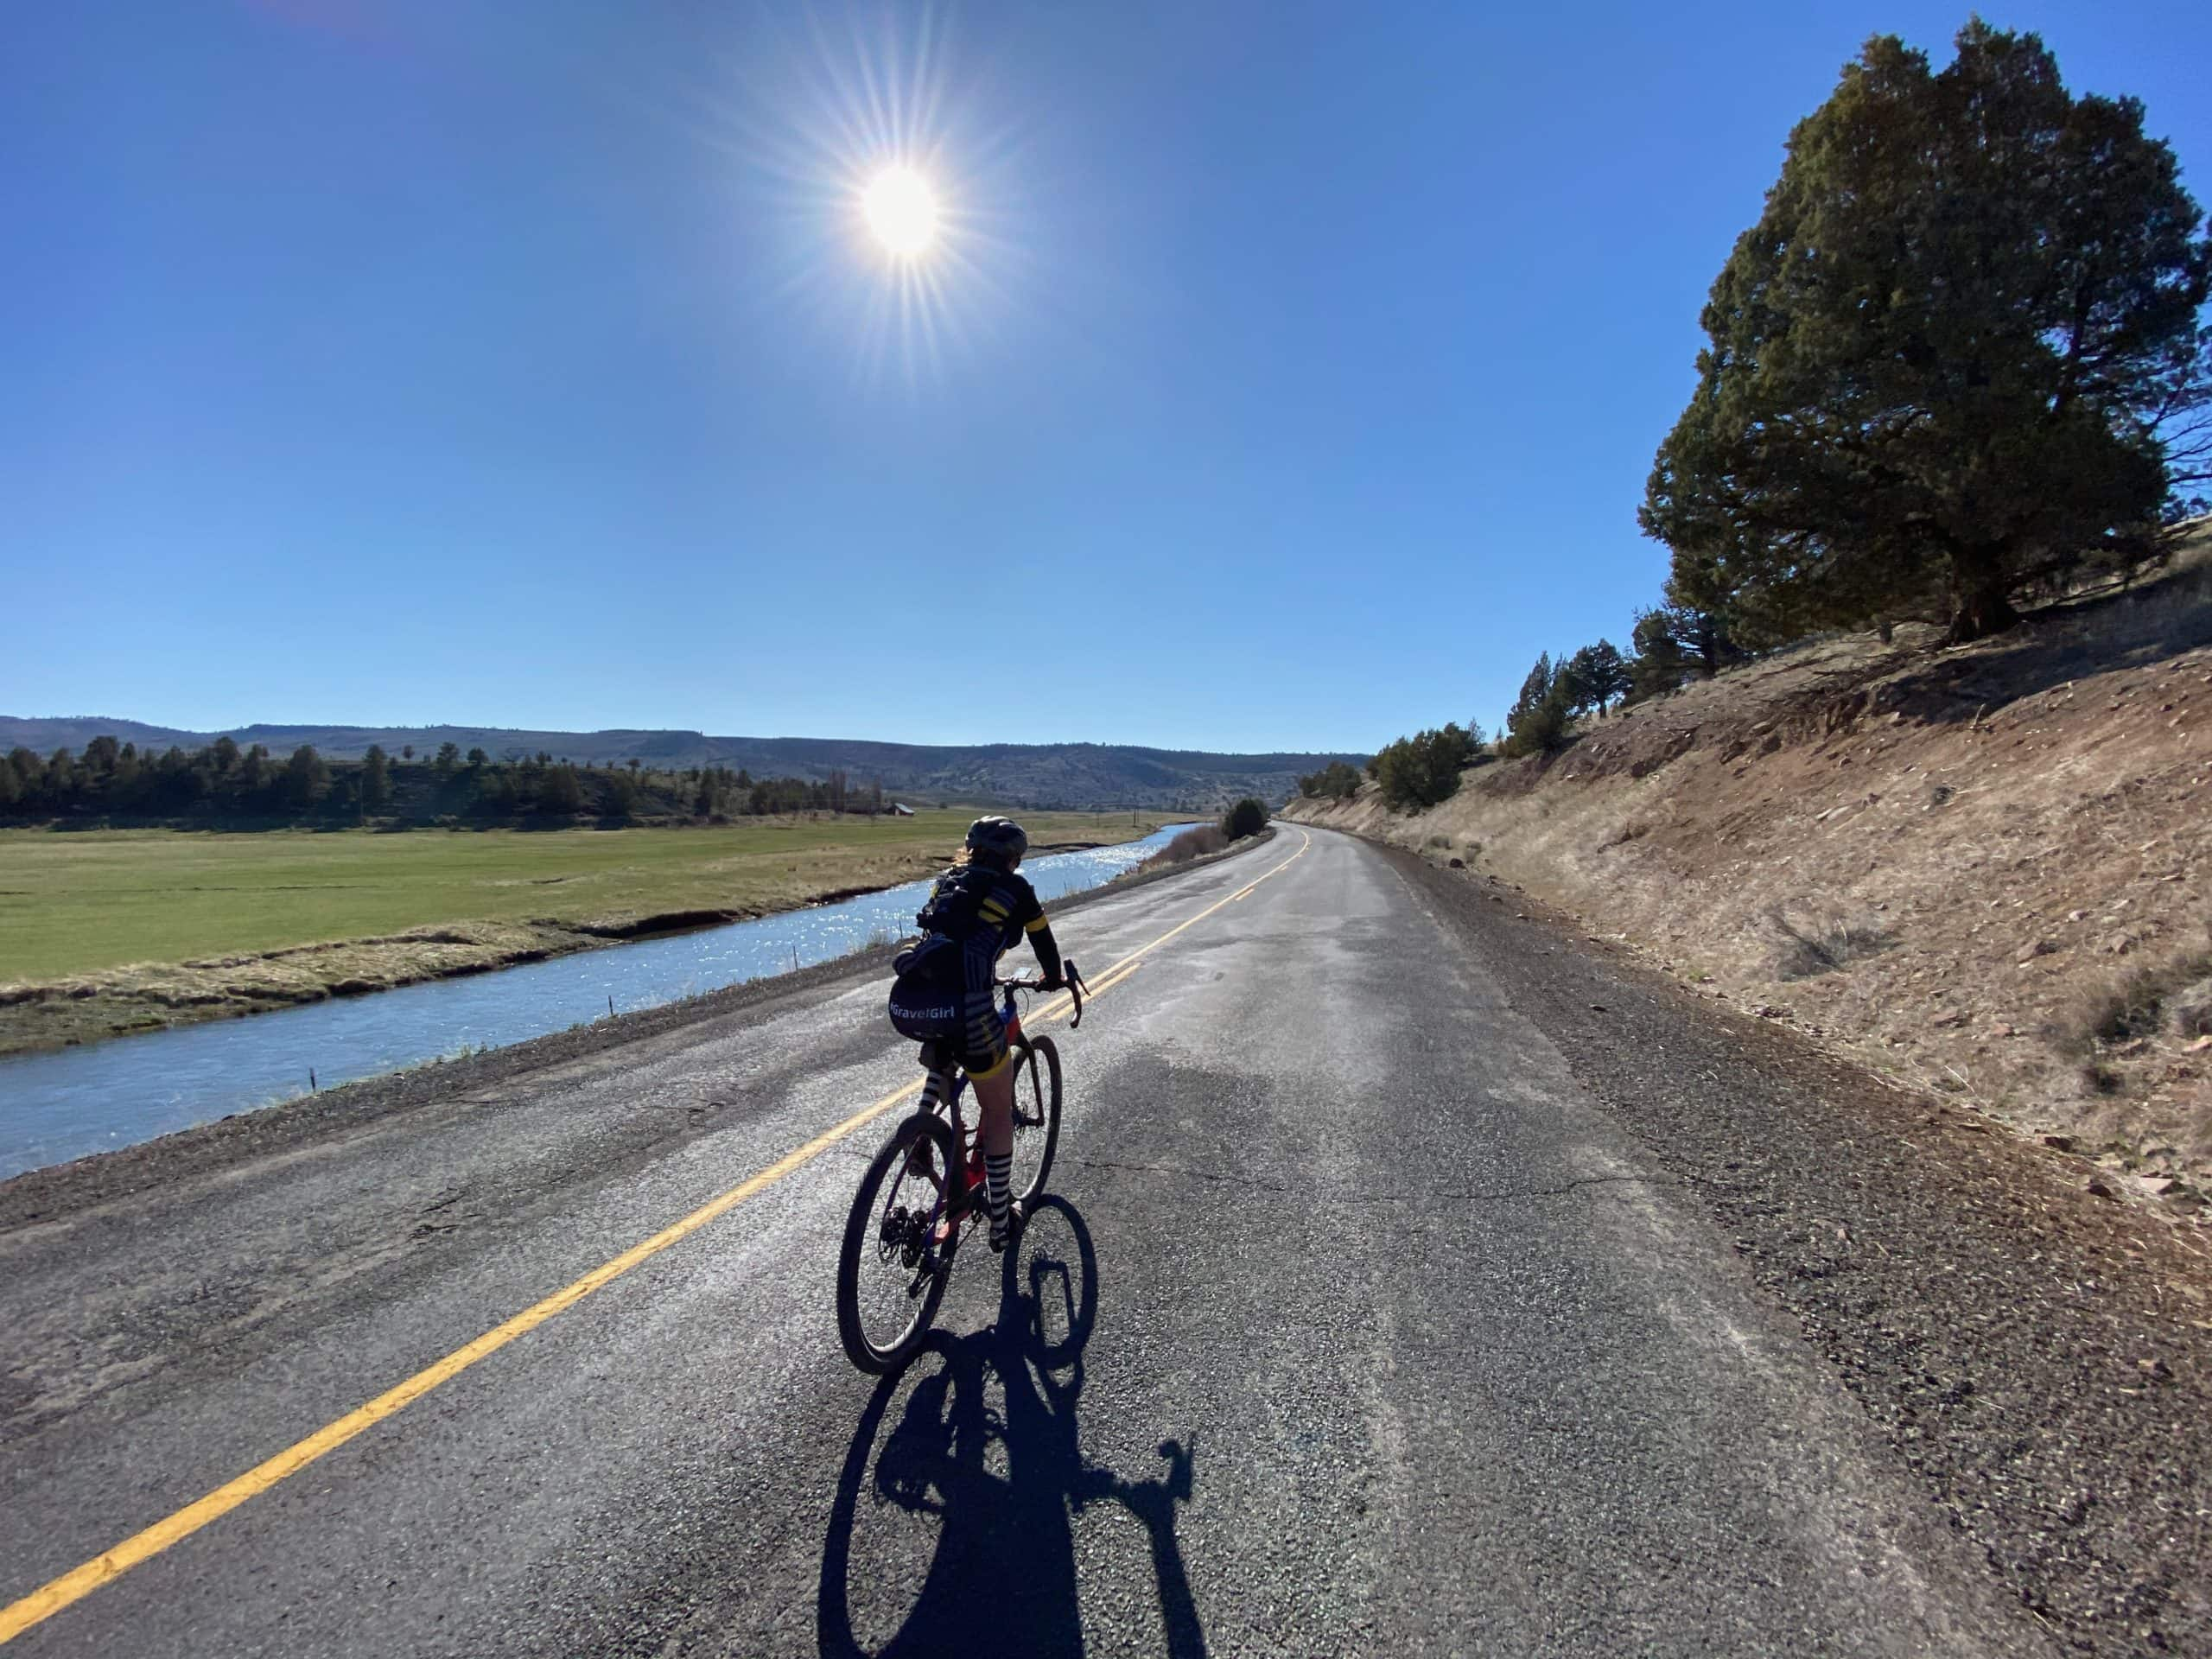 Cyclist on Highway 380 near Post, Oregon with Crooked River in background.